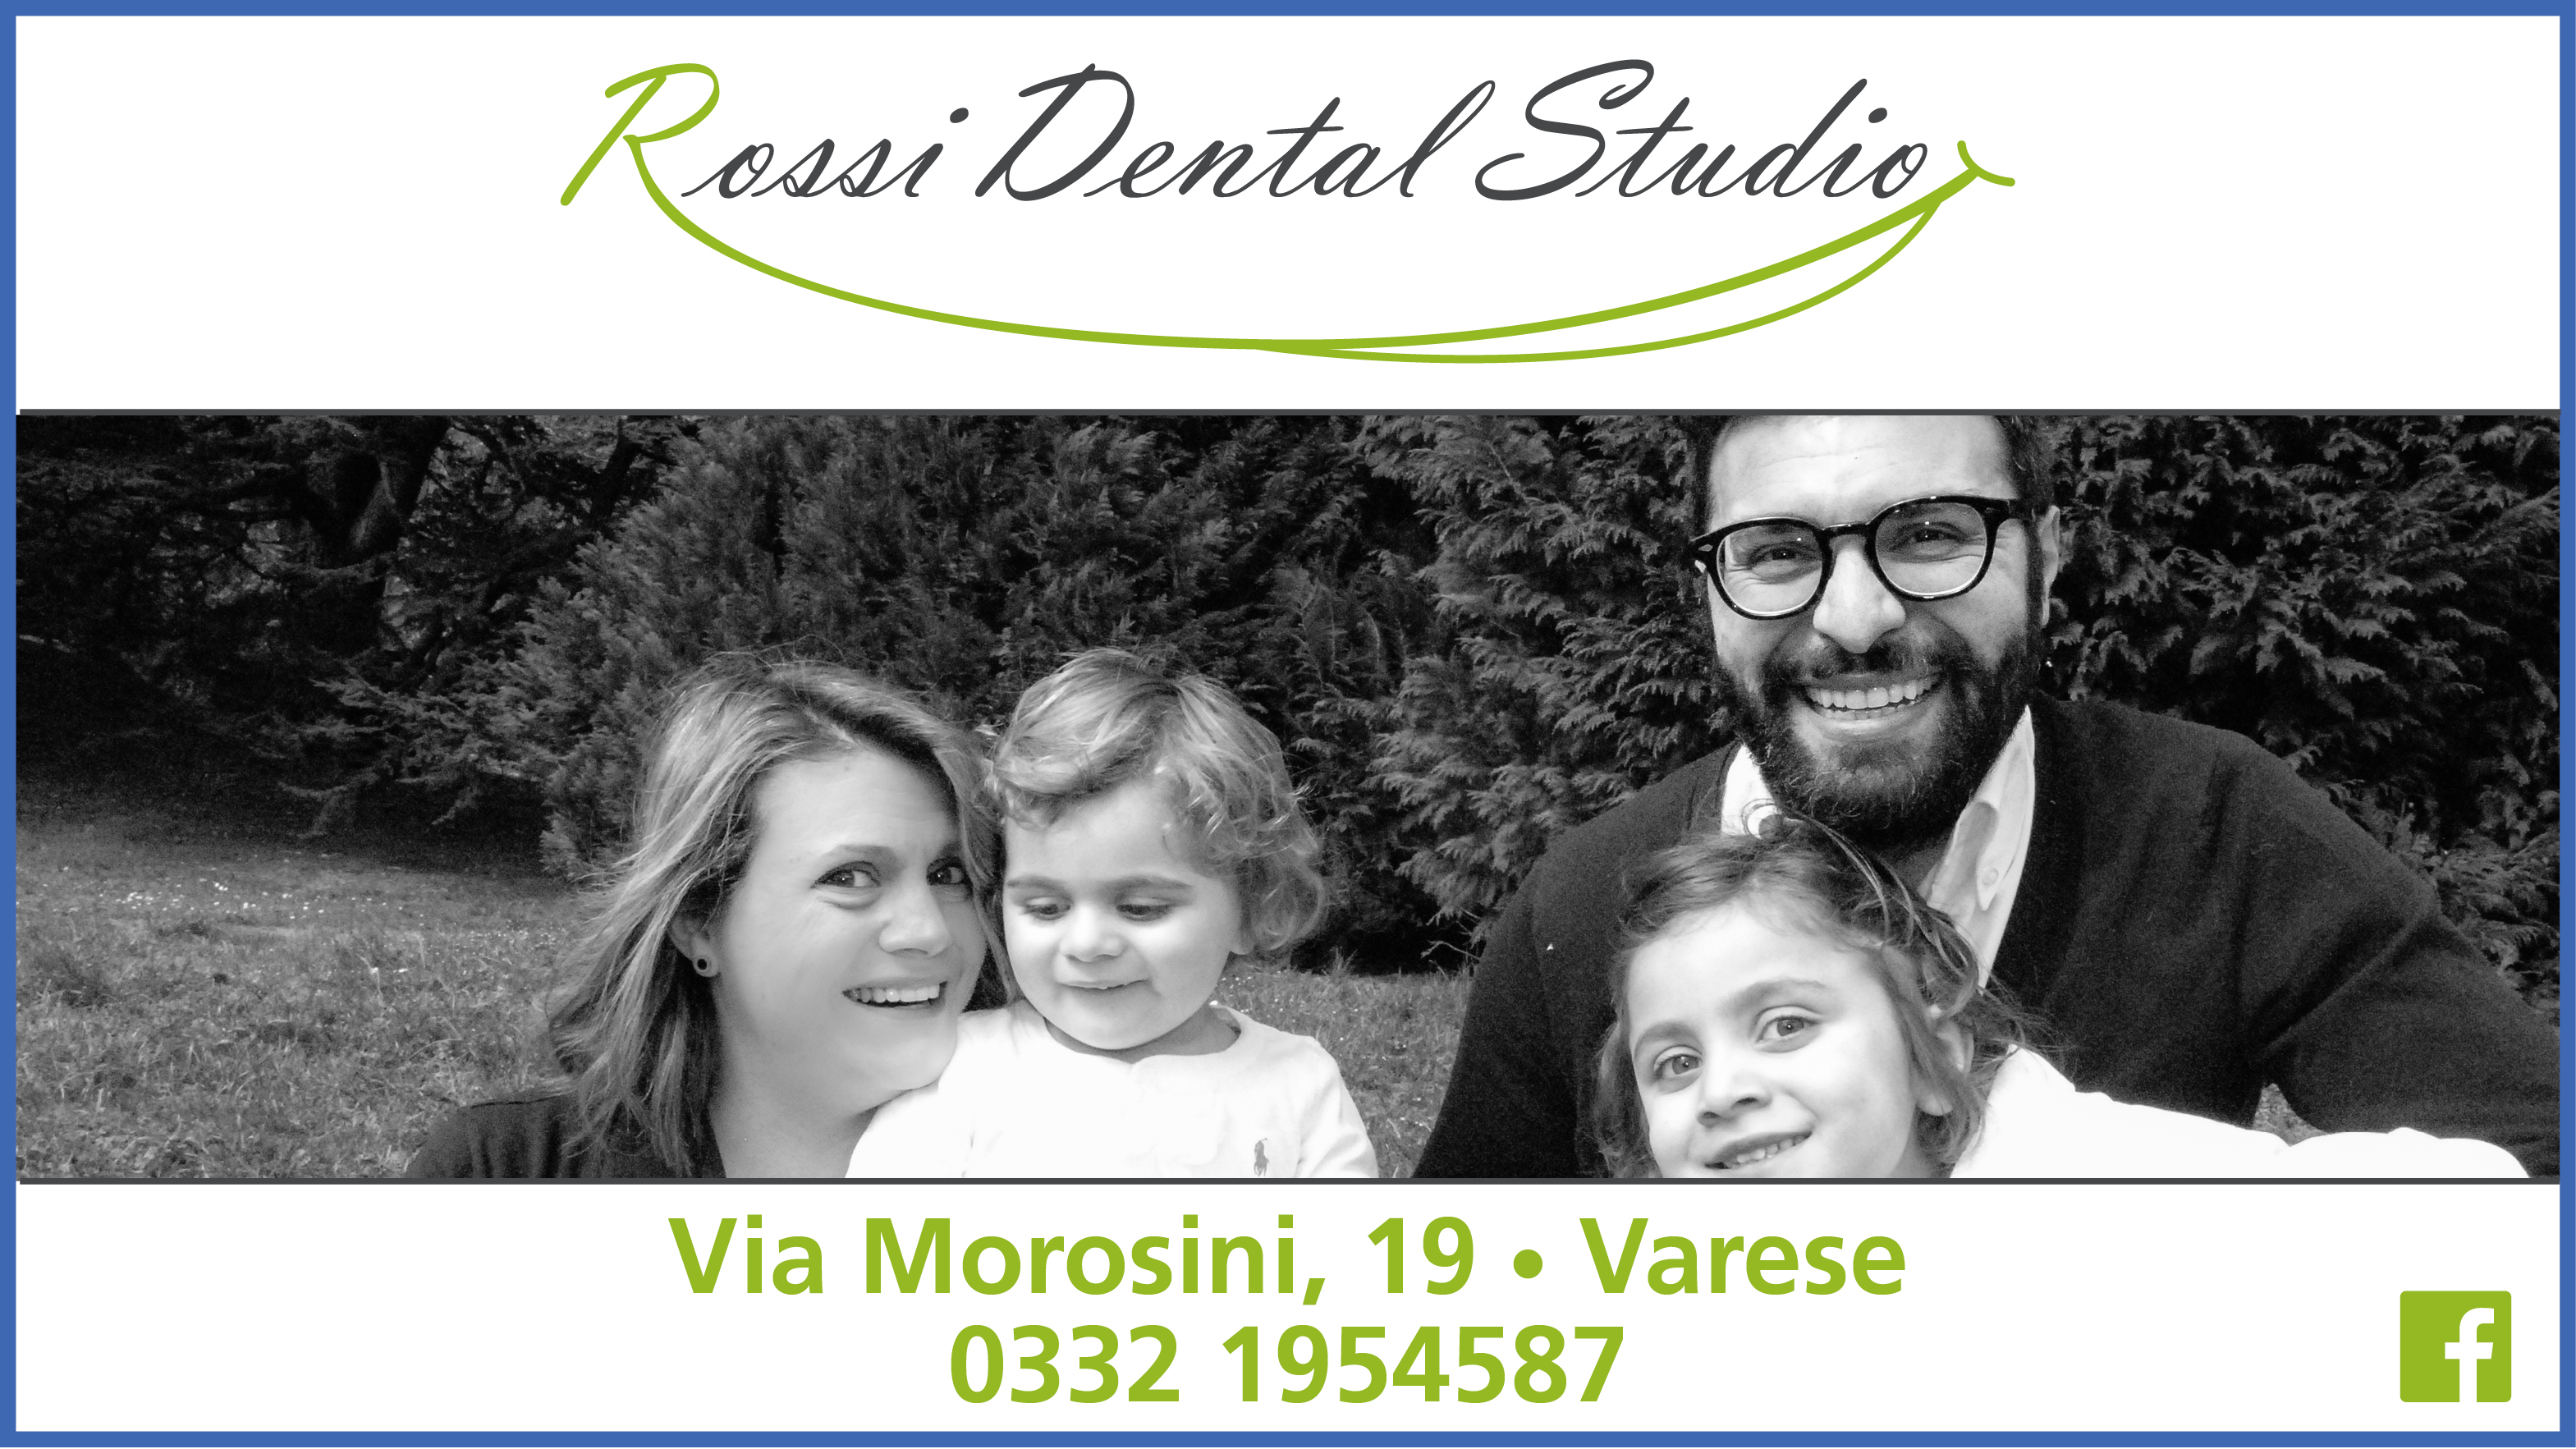 Rossi Dental Studio